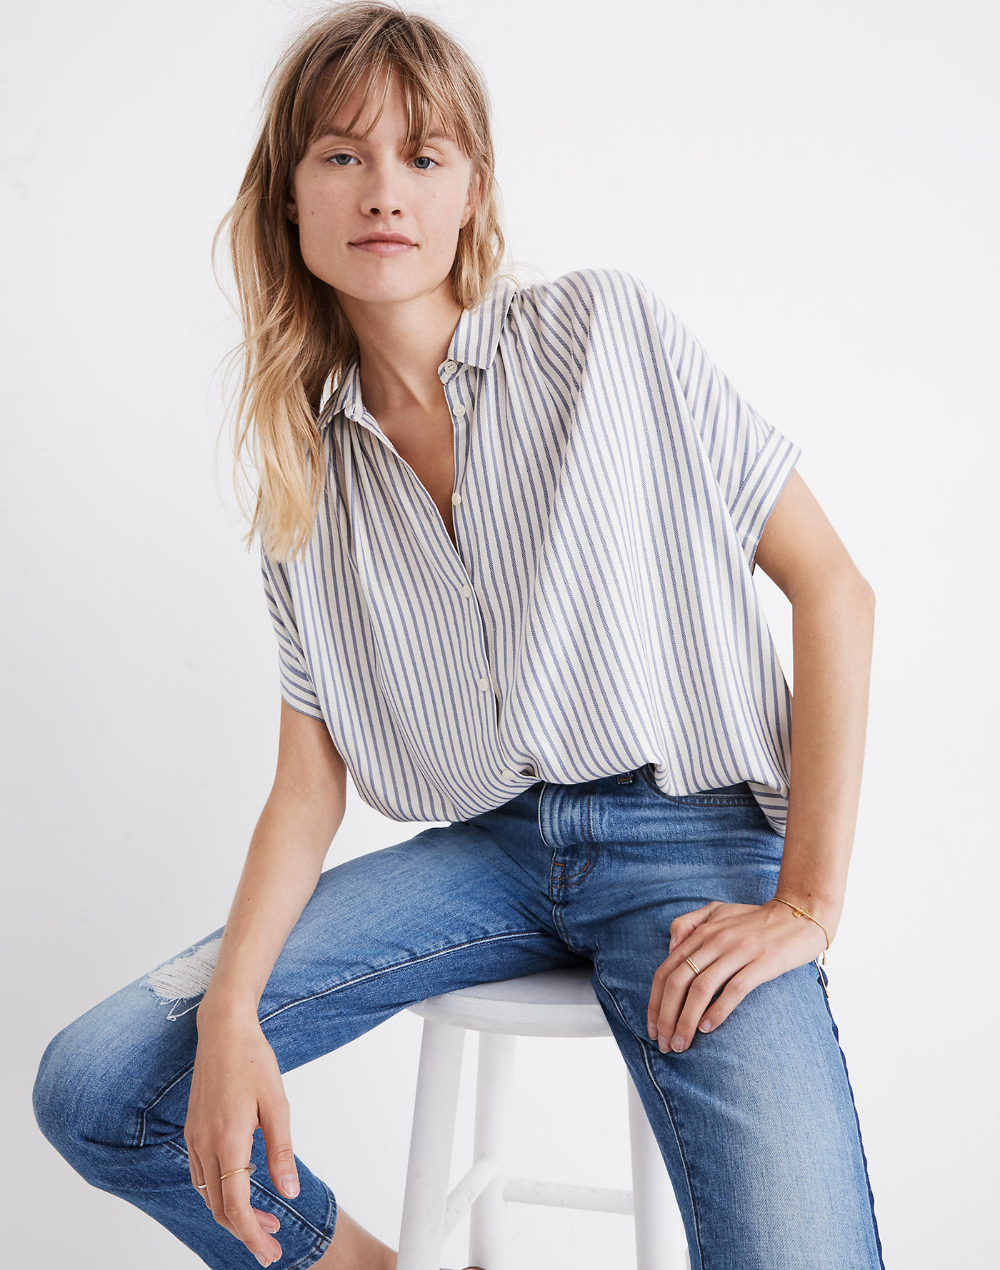 Central Shirt in Dalton Stripe Summer work outfits, Fall